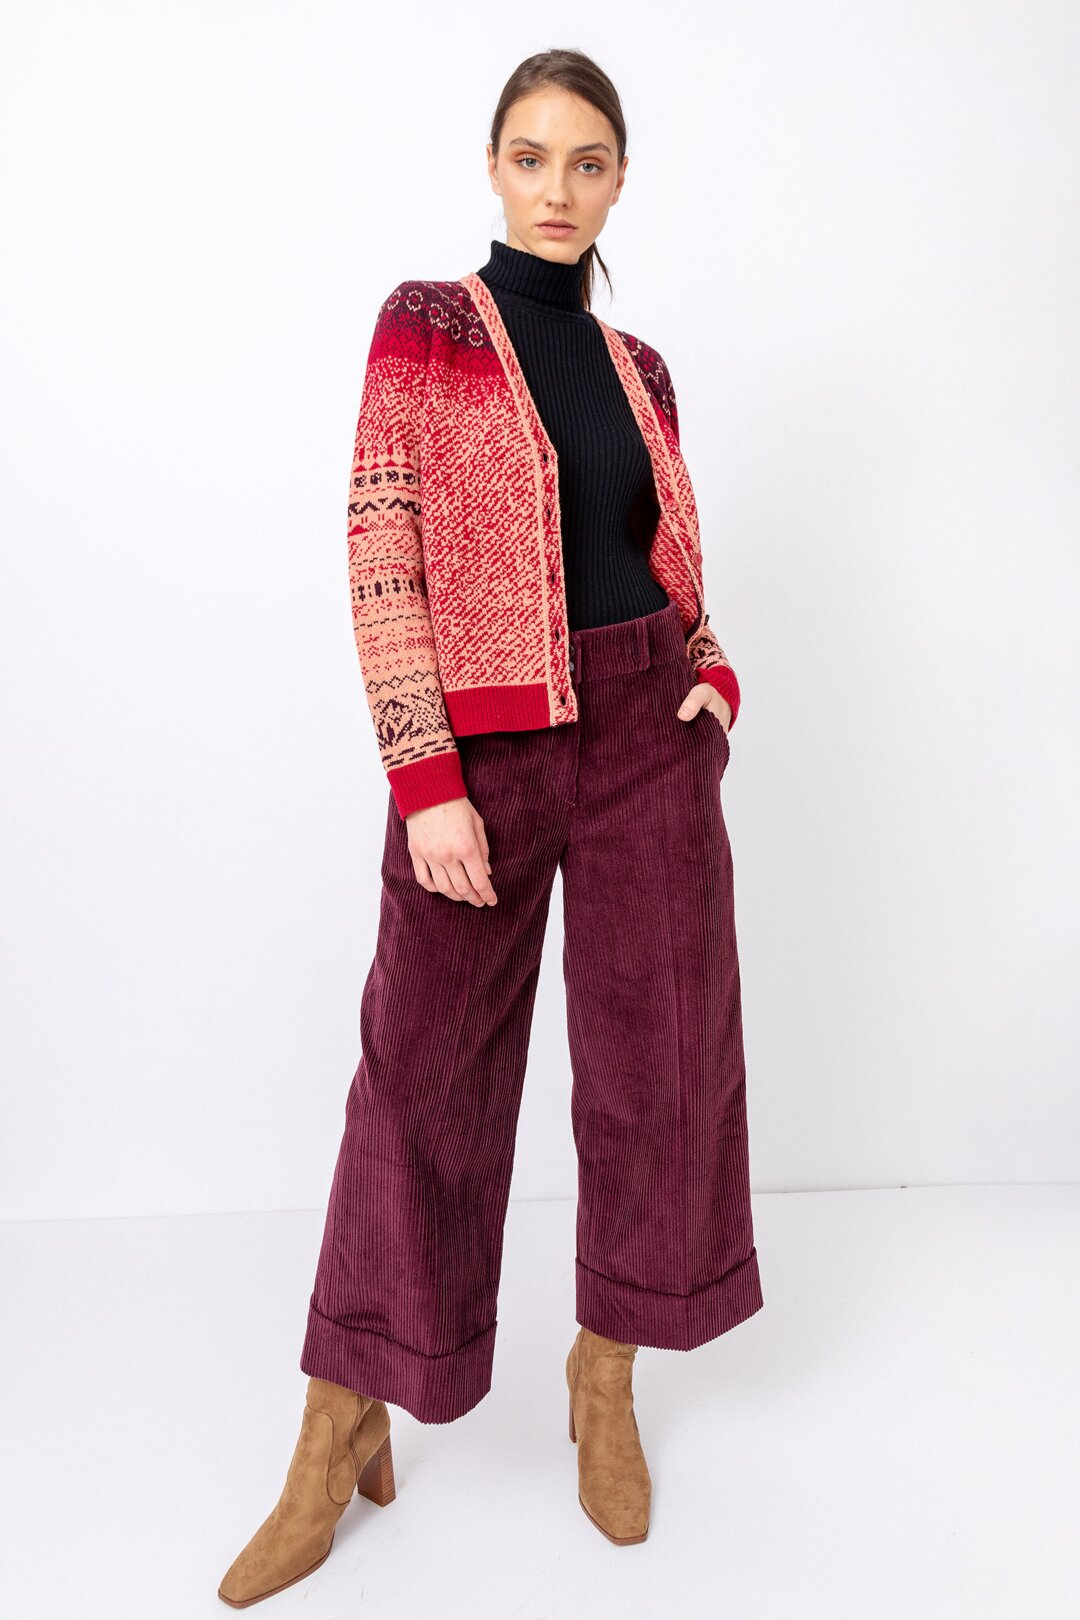 outfit-7c8a8796